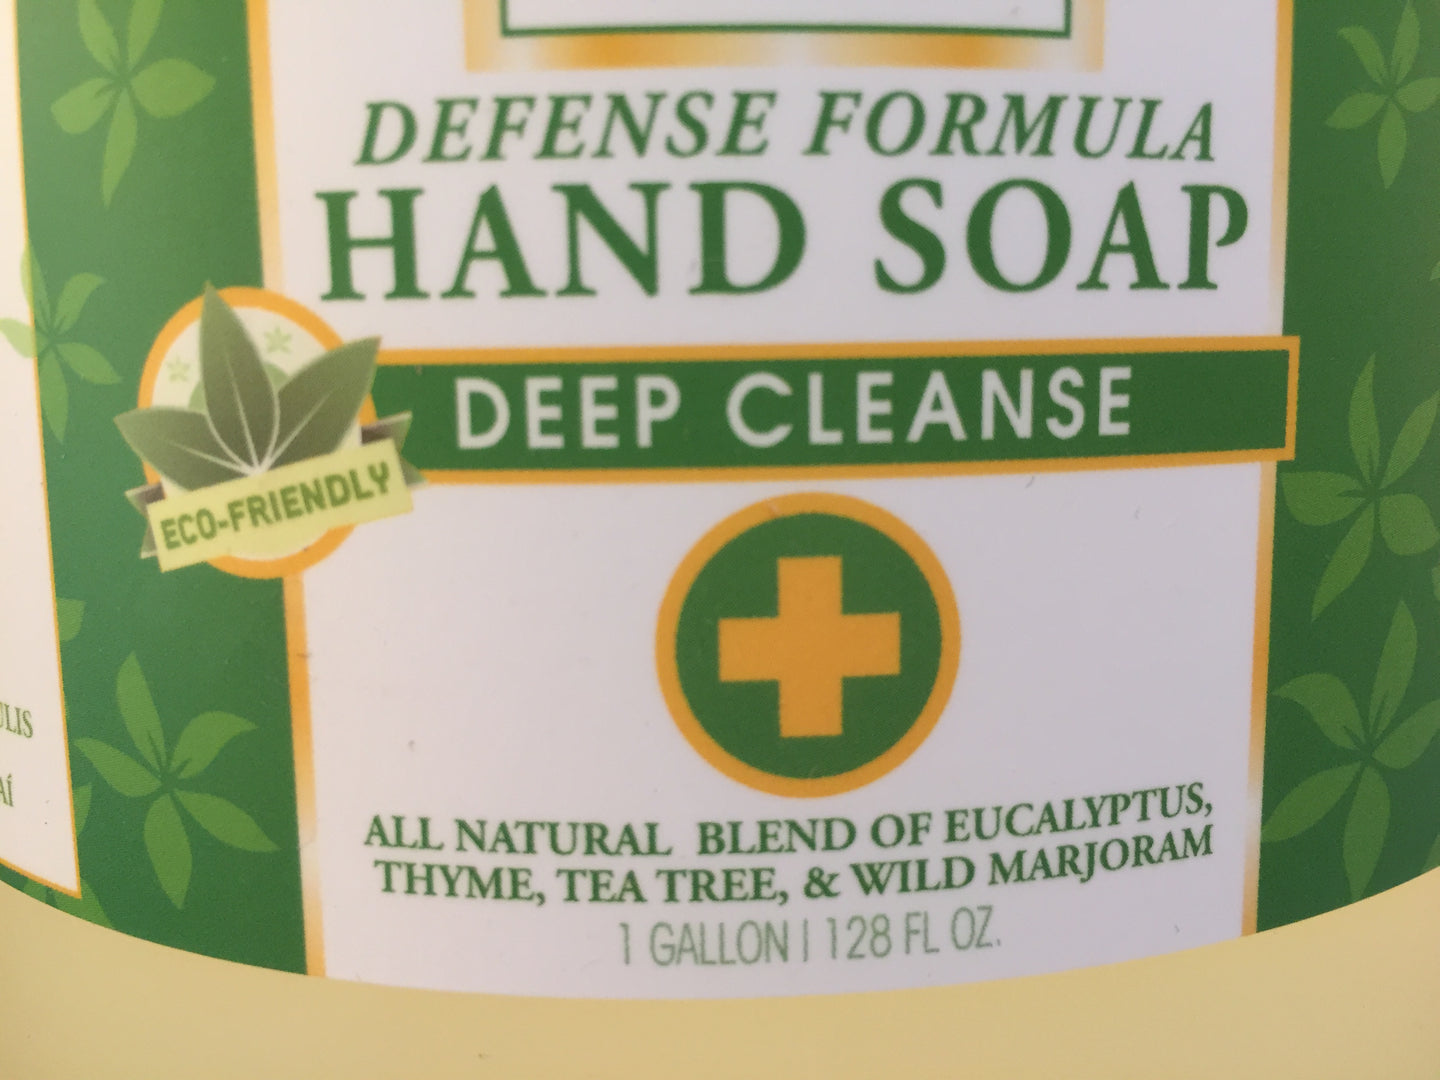 Pre-Scented Anti-Bacterial Liquid Hand Soap